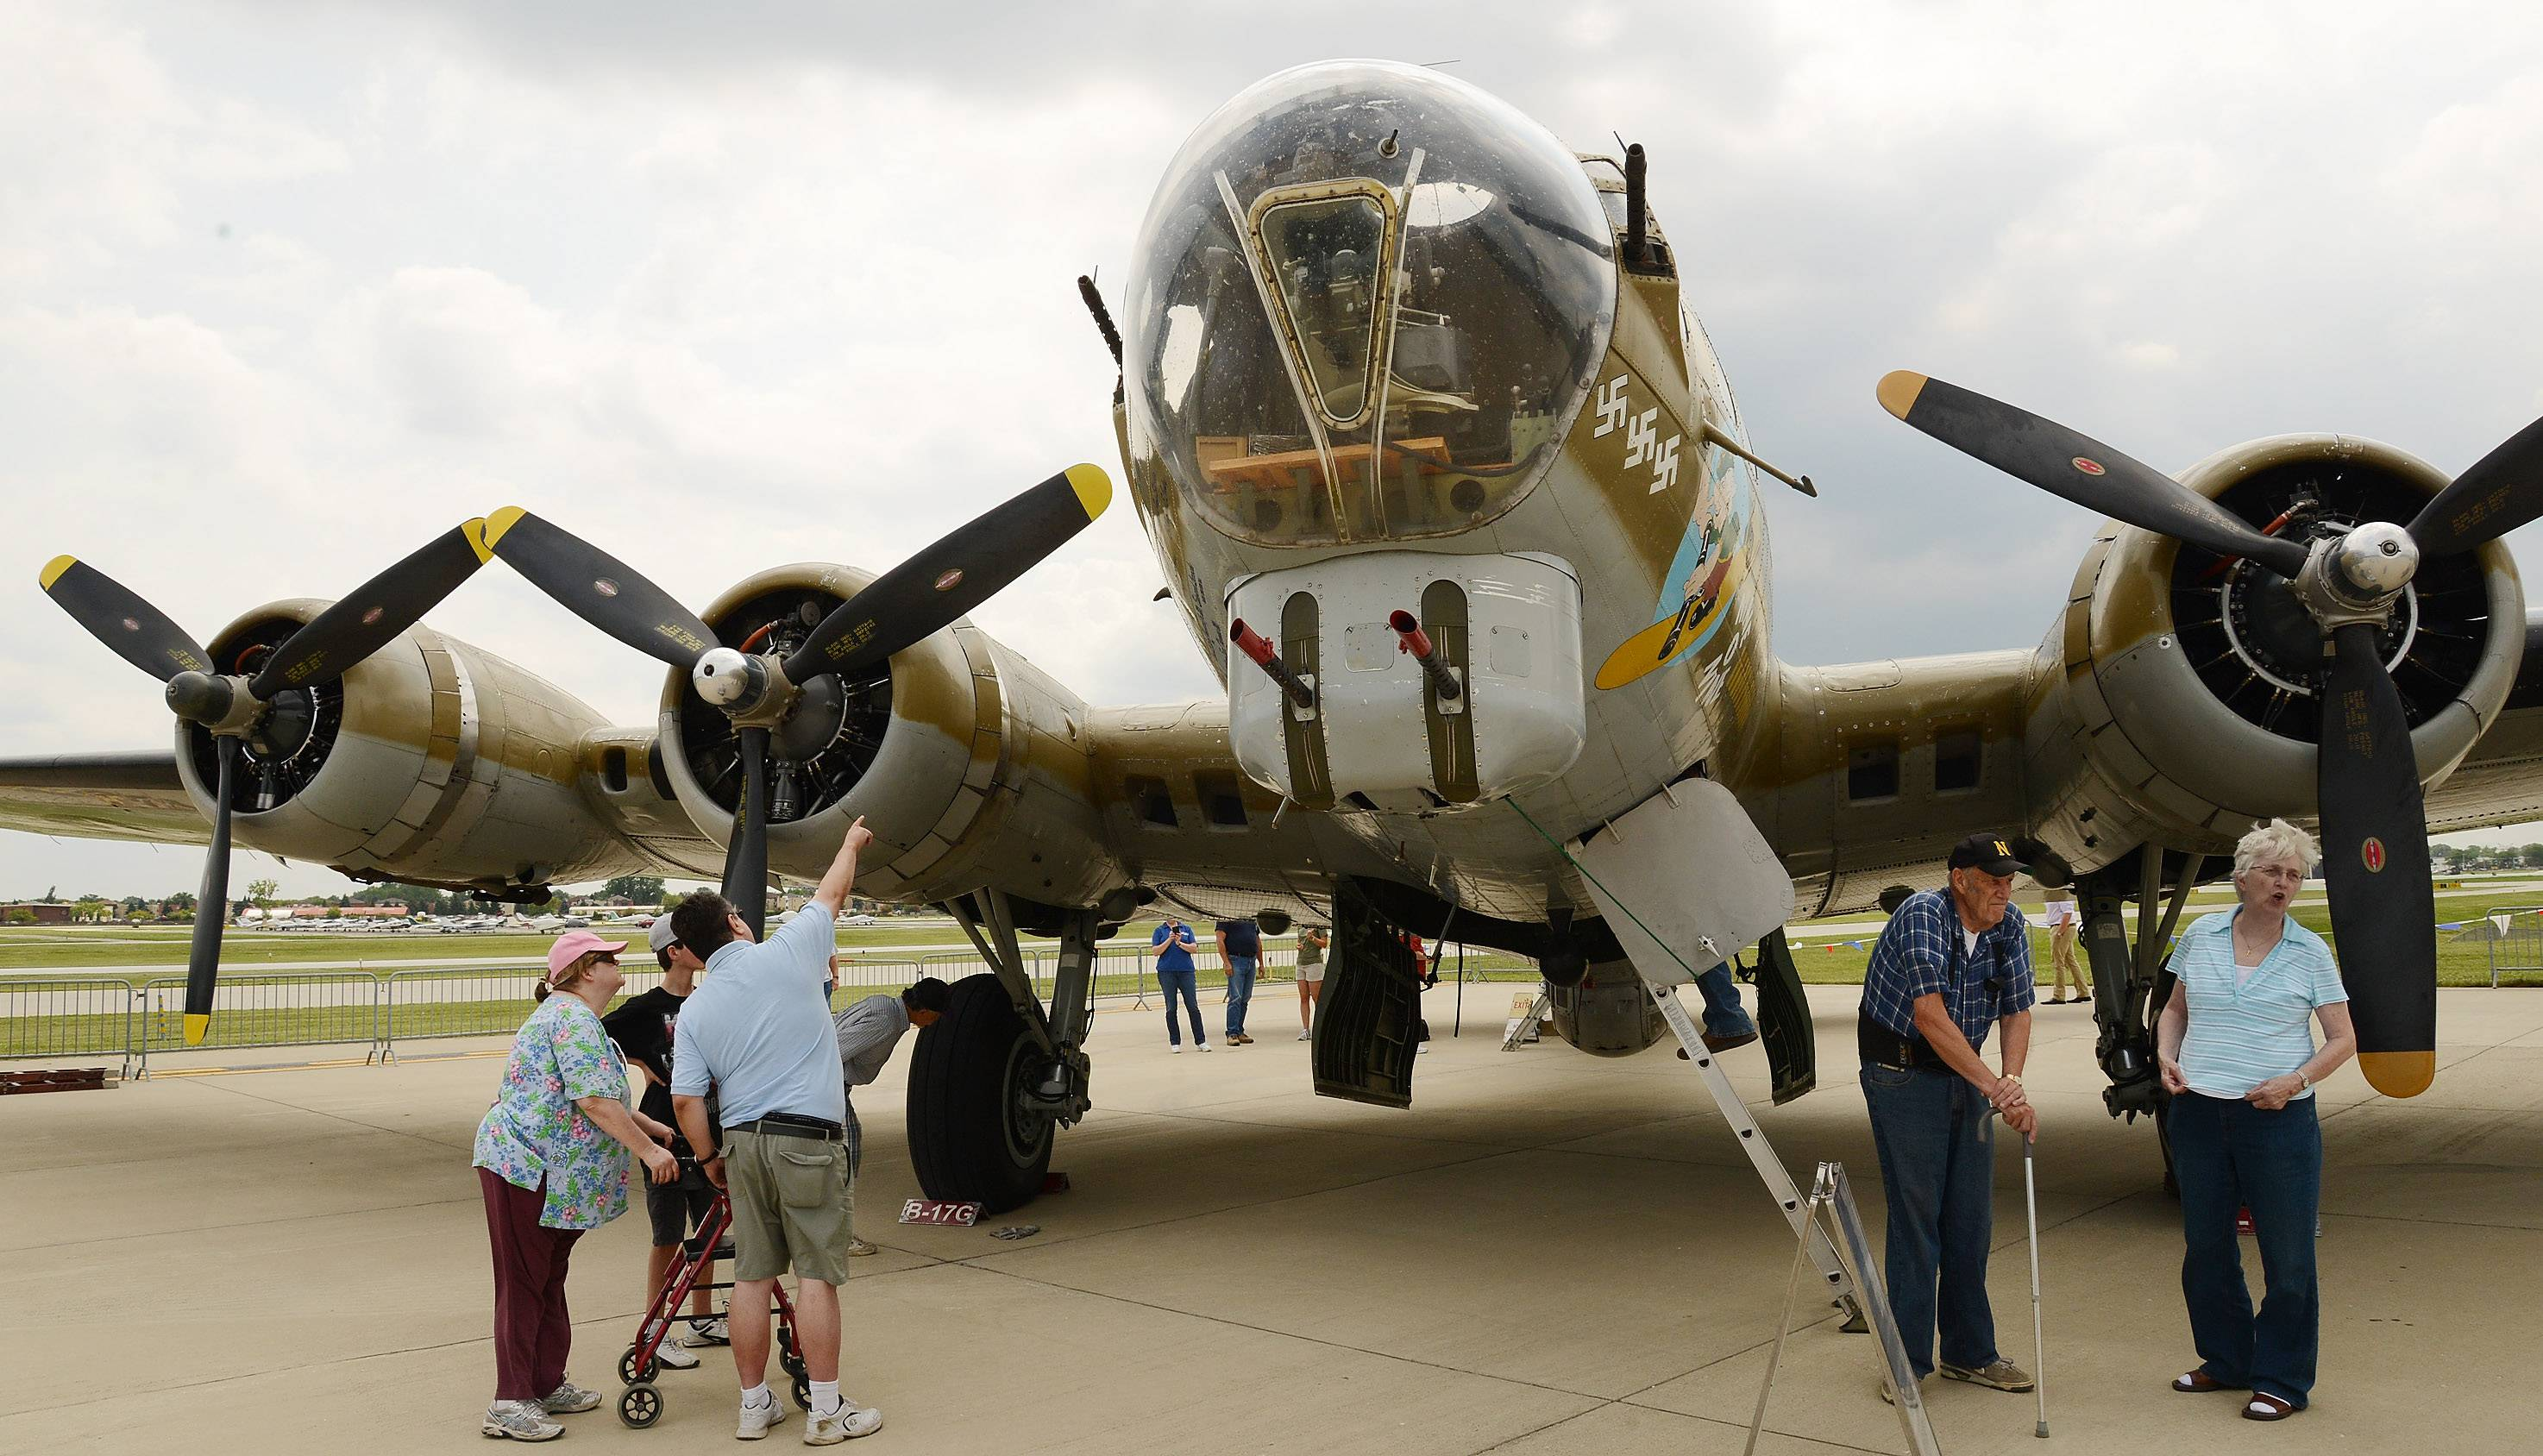 Mark Farina, of Brookfield, shows his wife Diane, left, and son Louis a B-17 Flying Fortress. Diane's father, Casey Paulinski, co-piloted the WWII-era bomber.